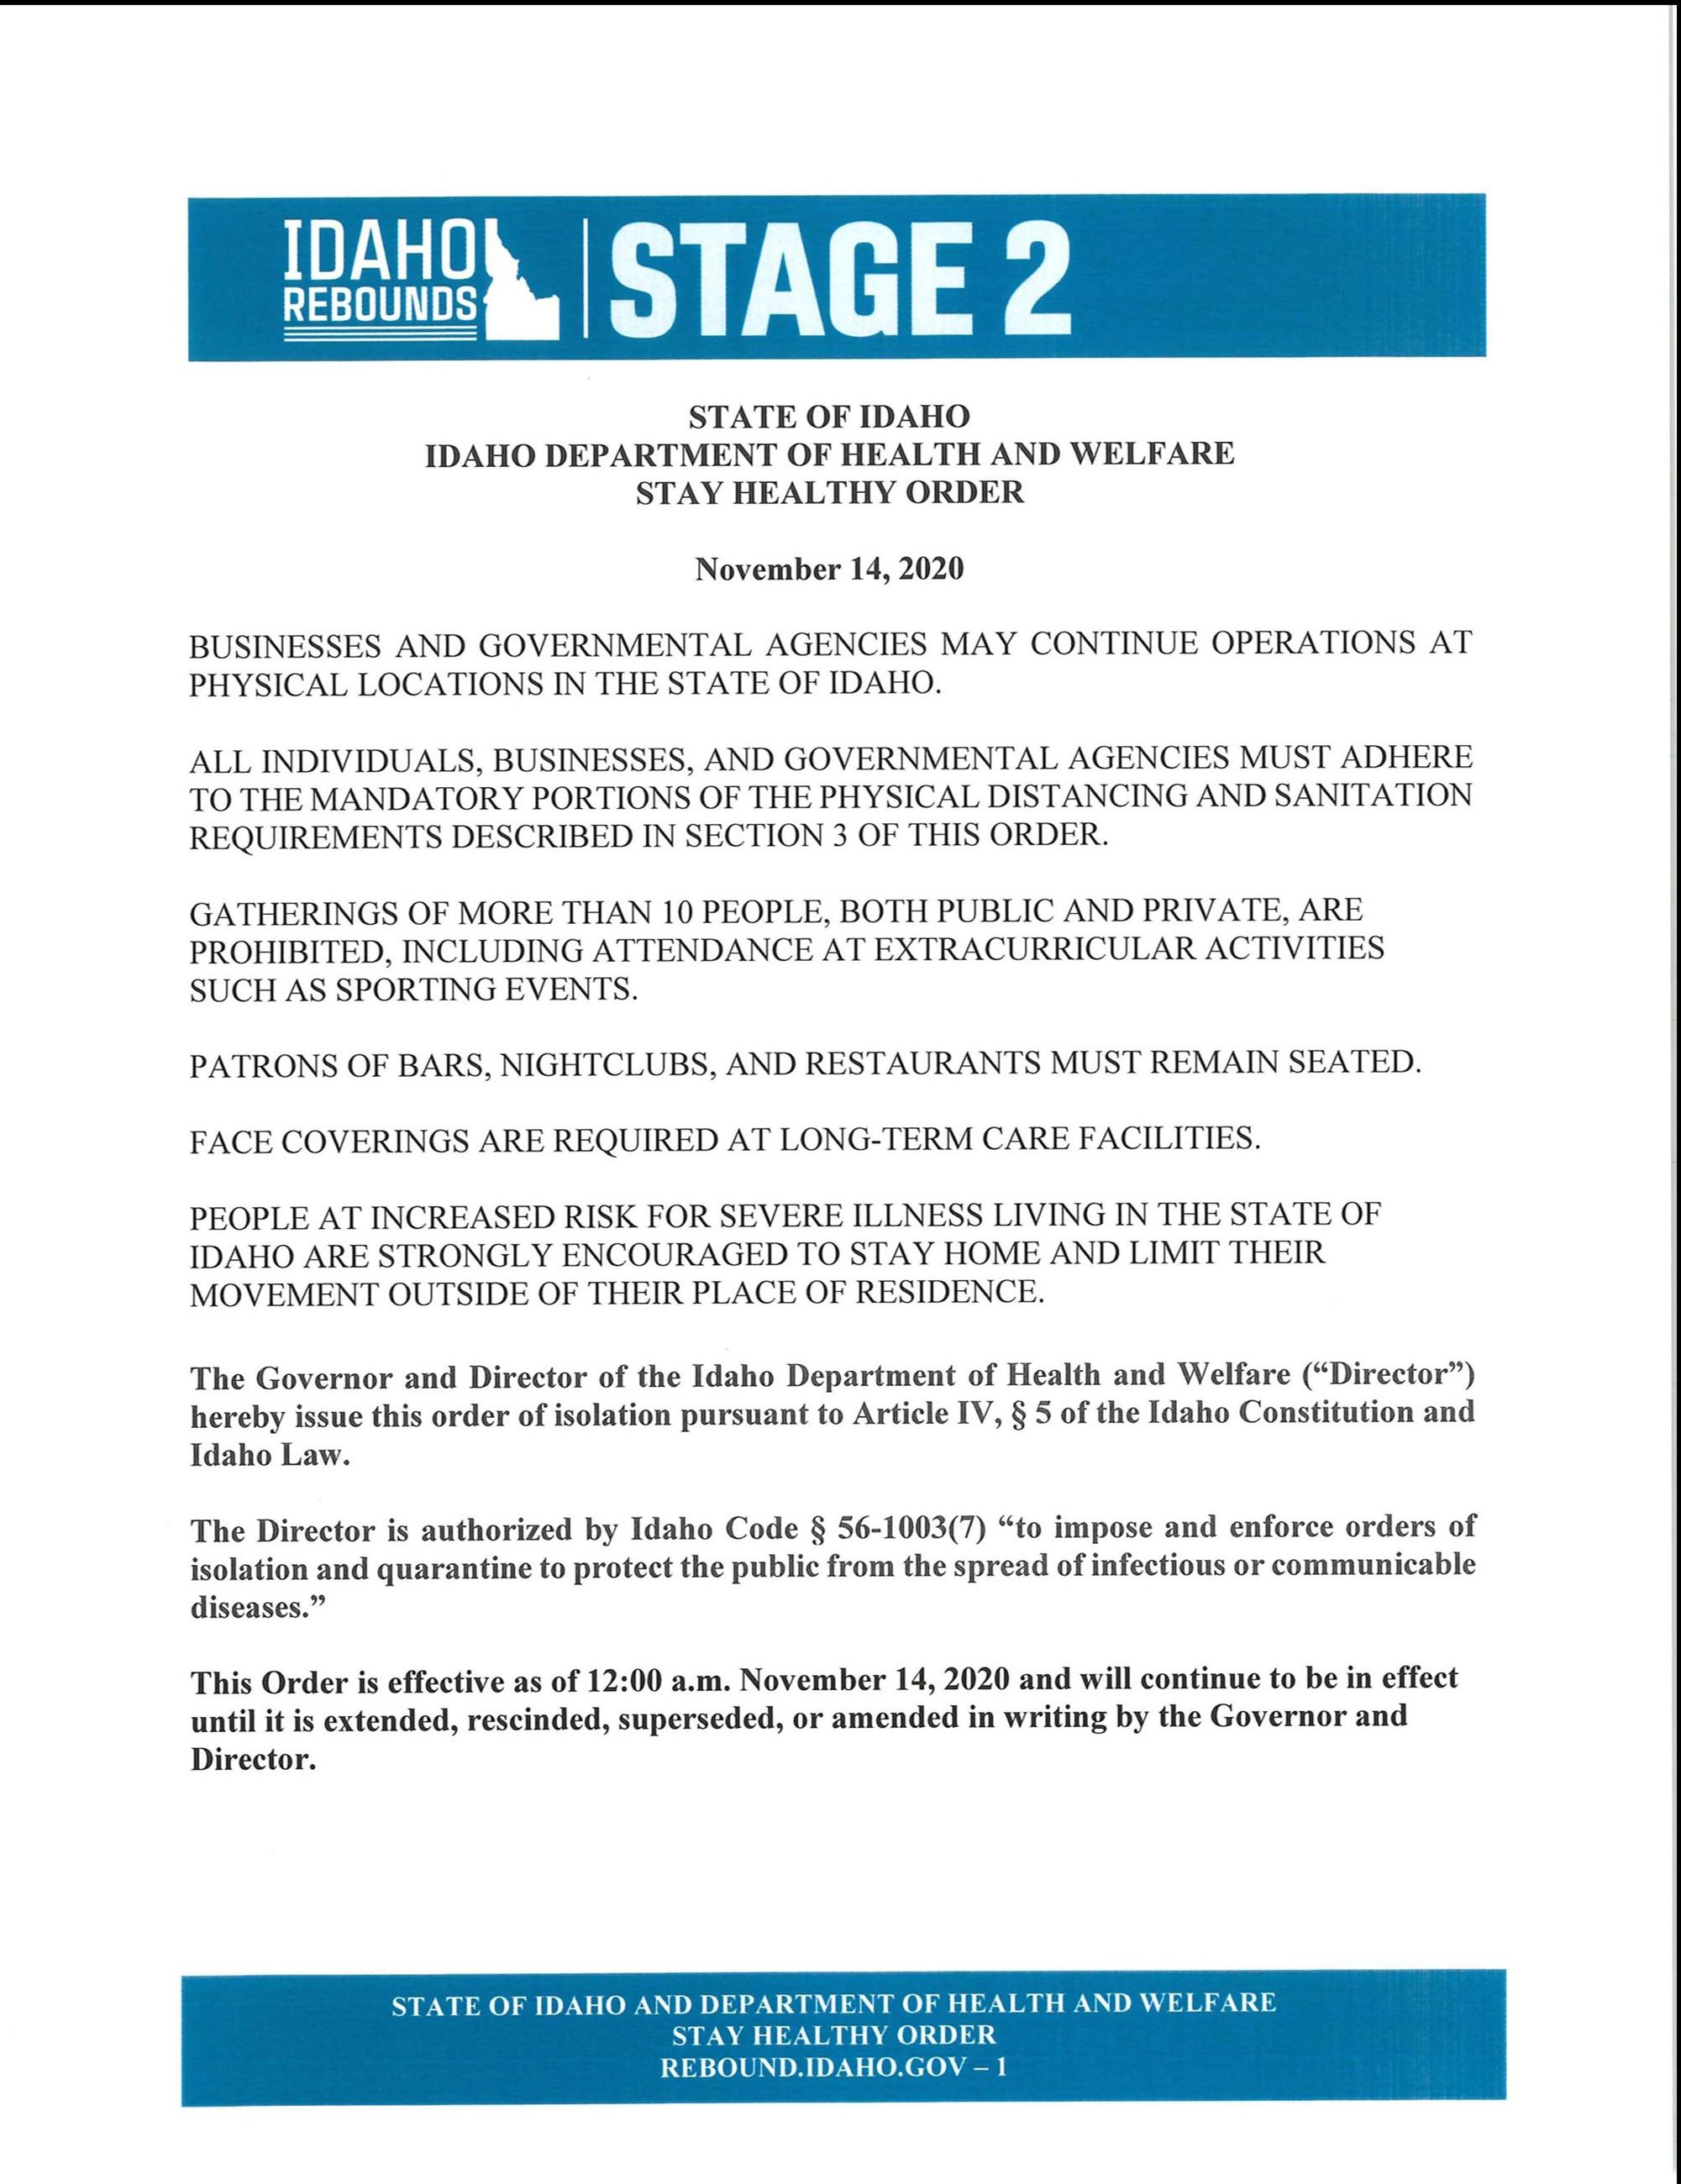 stage-2-modified-order-11.14.2020_Page_1 (JPEG)